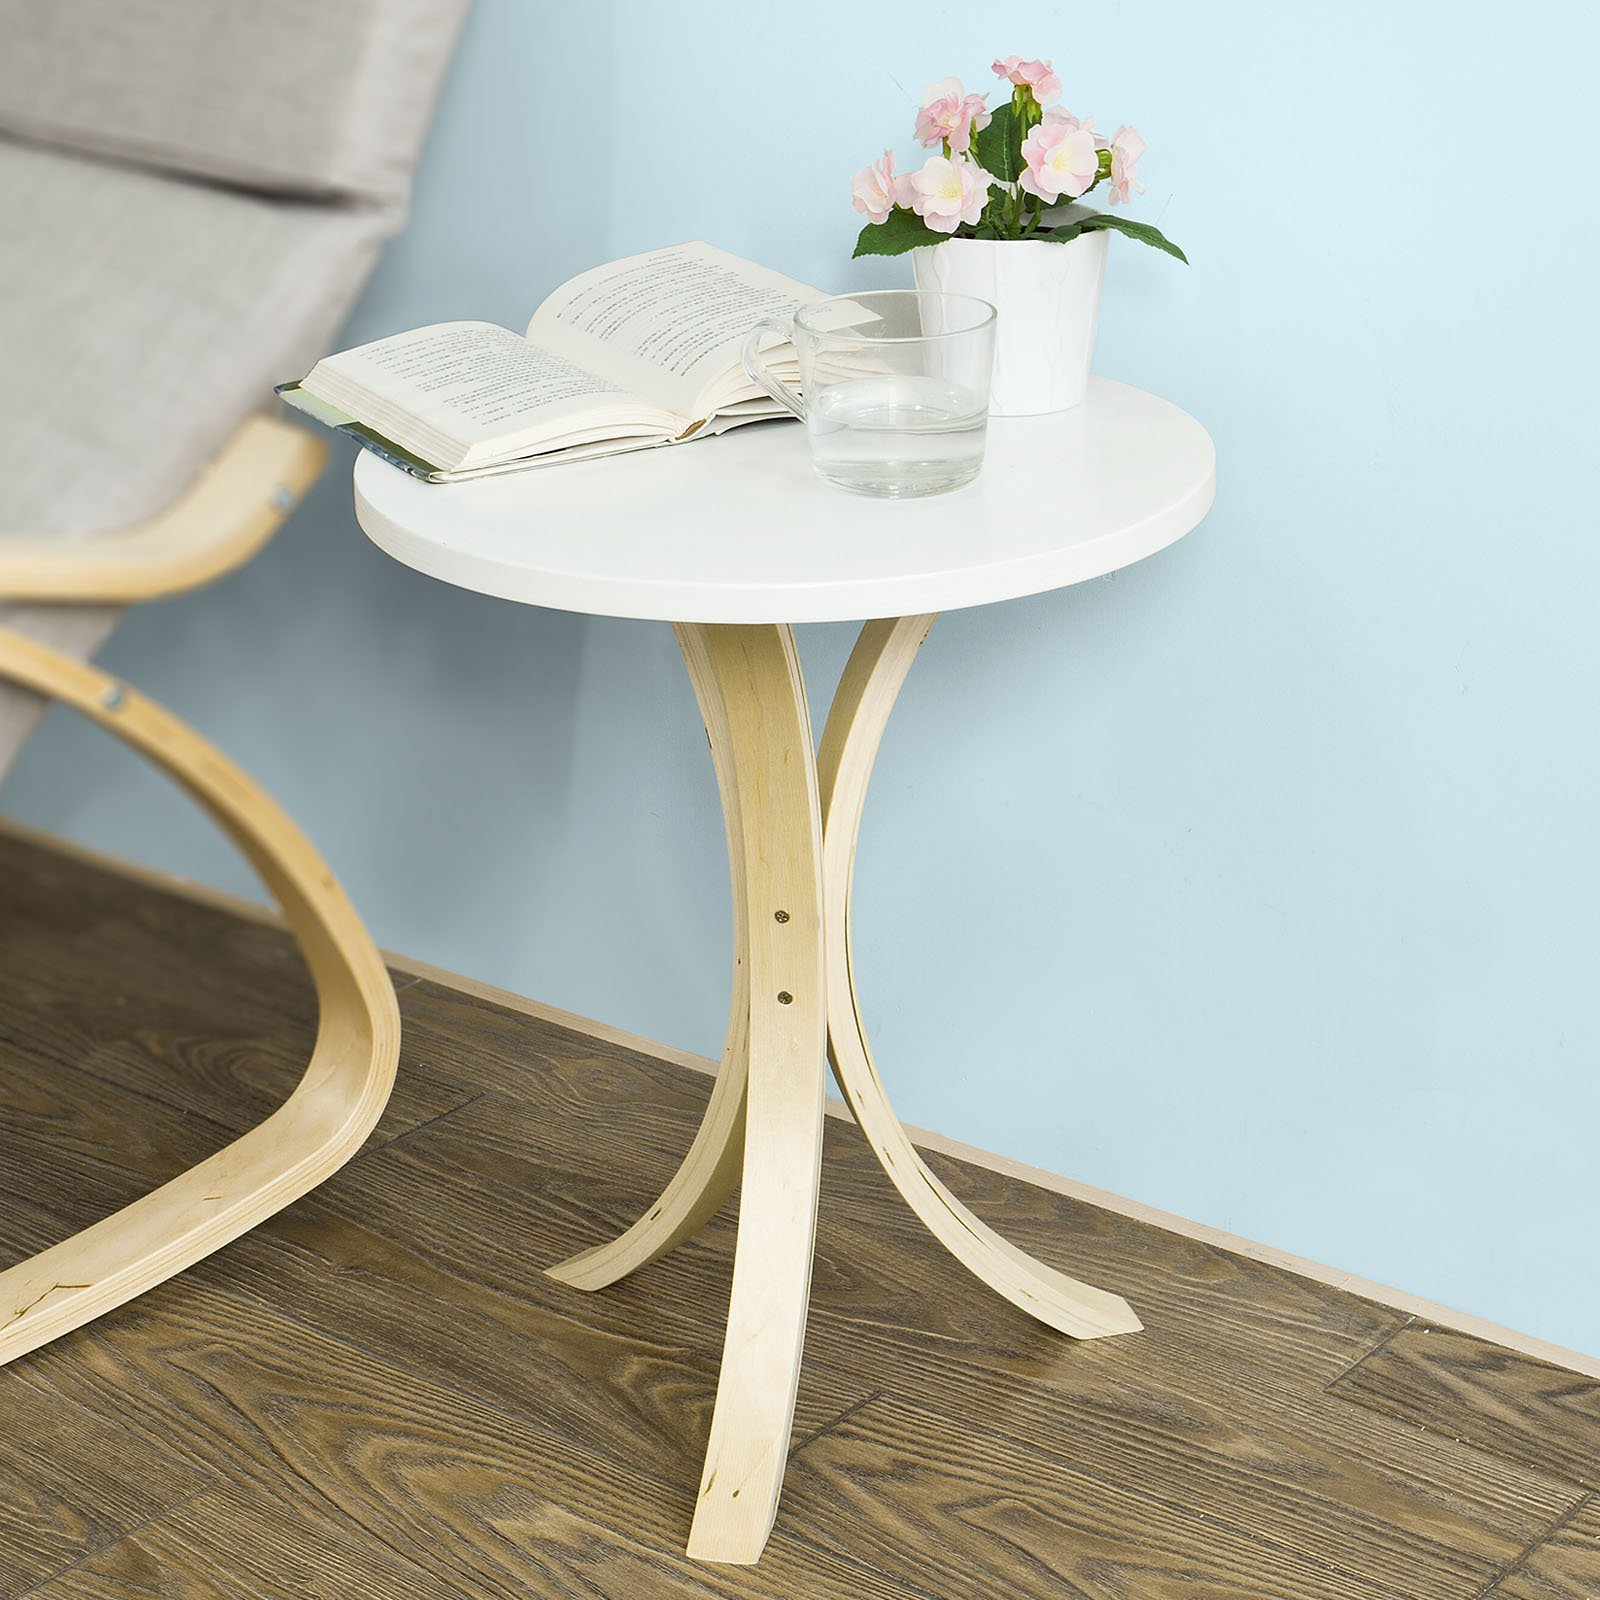 SoBuy Round Wooden Side Table, Tea Coffee Table, Telephone Table, FBT29-W